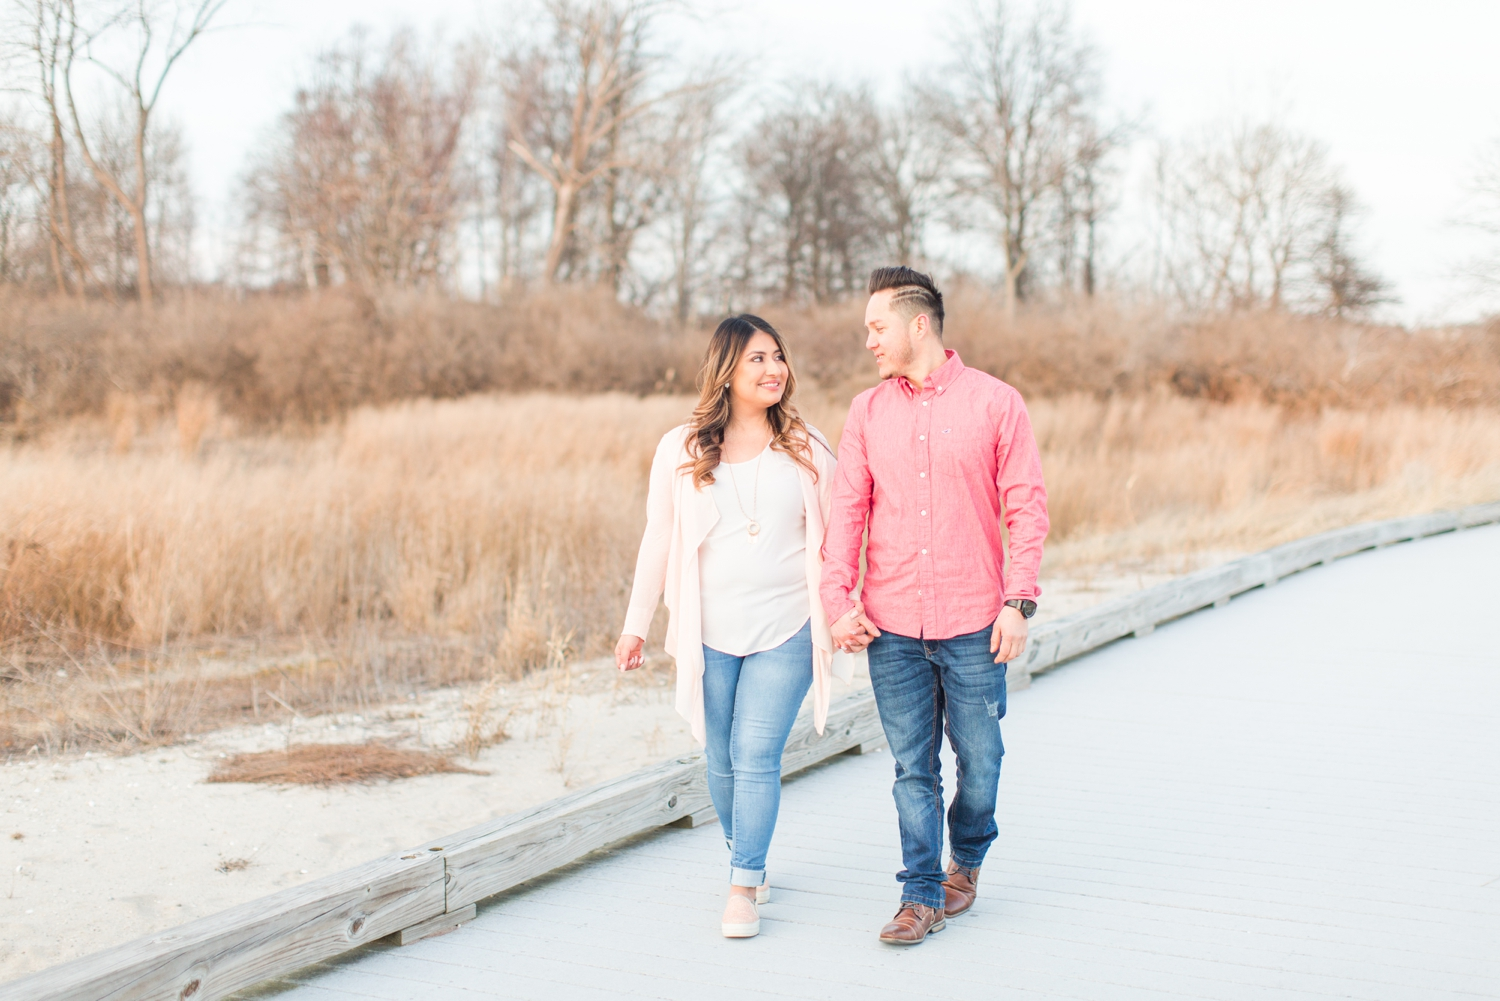 walnut-beach-engagement-session-milford-connecticut-photographer-shaina-lee-photography-photo-16.jpg